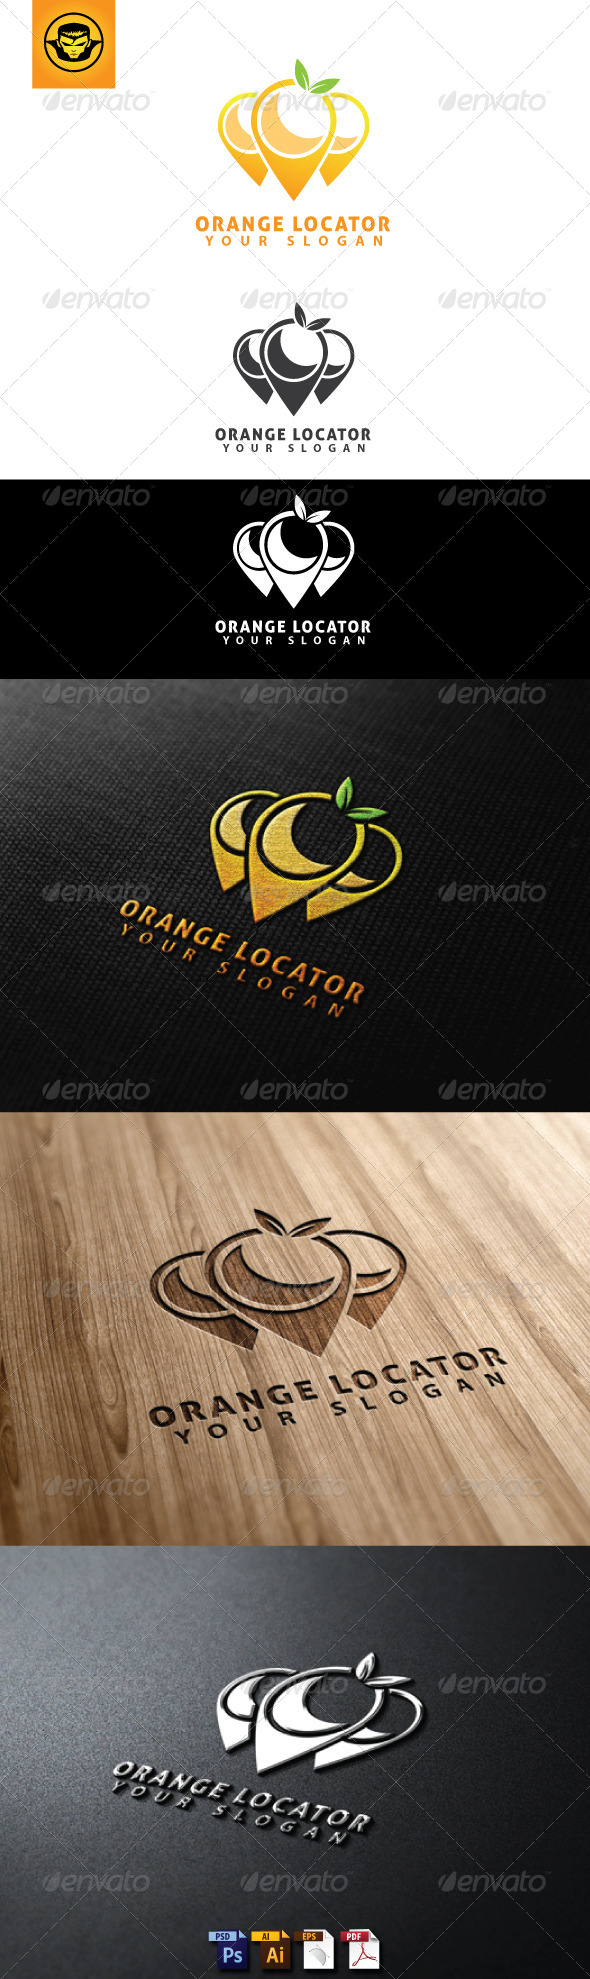 Orange Locator Logo Template - Food Logo Templates